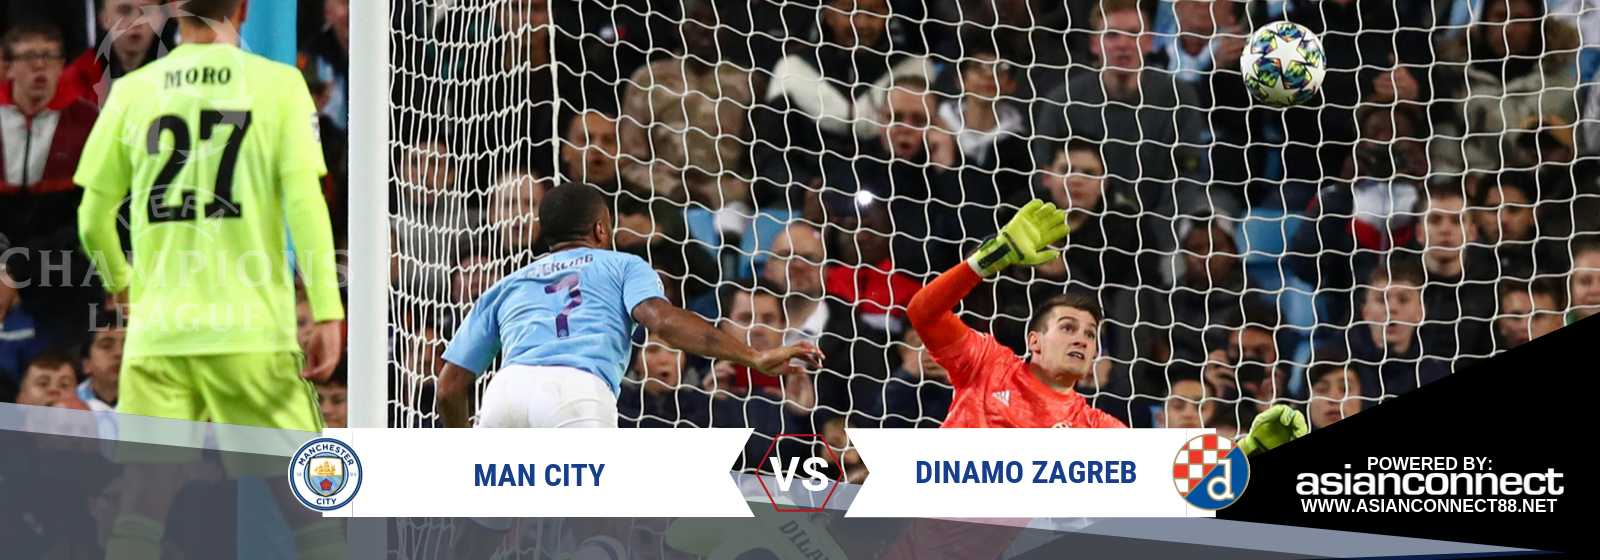 UCL Man City Vs. Dinamo Zagreb Asian Connect